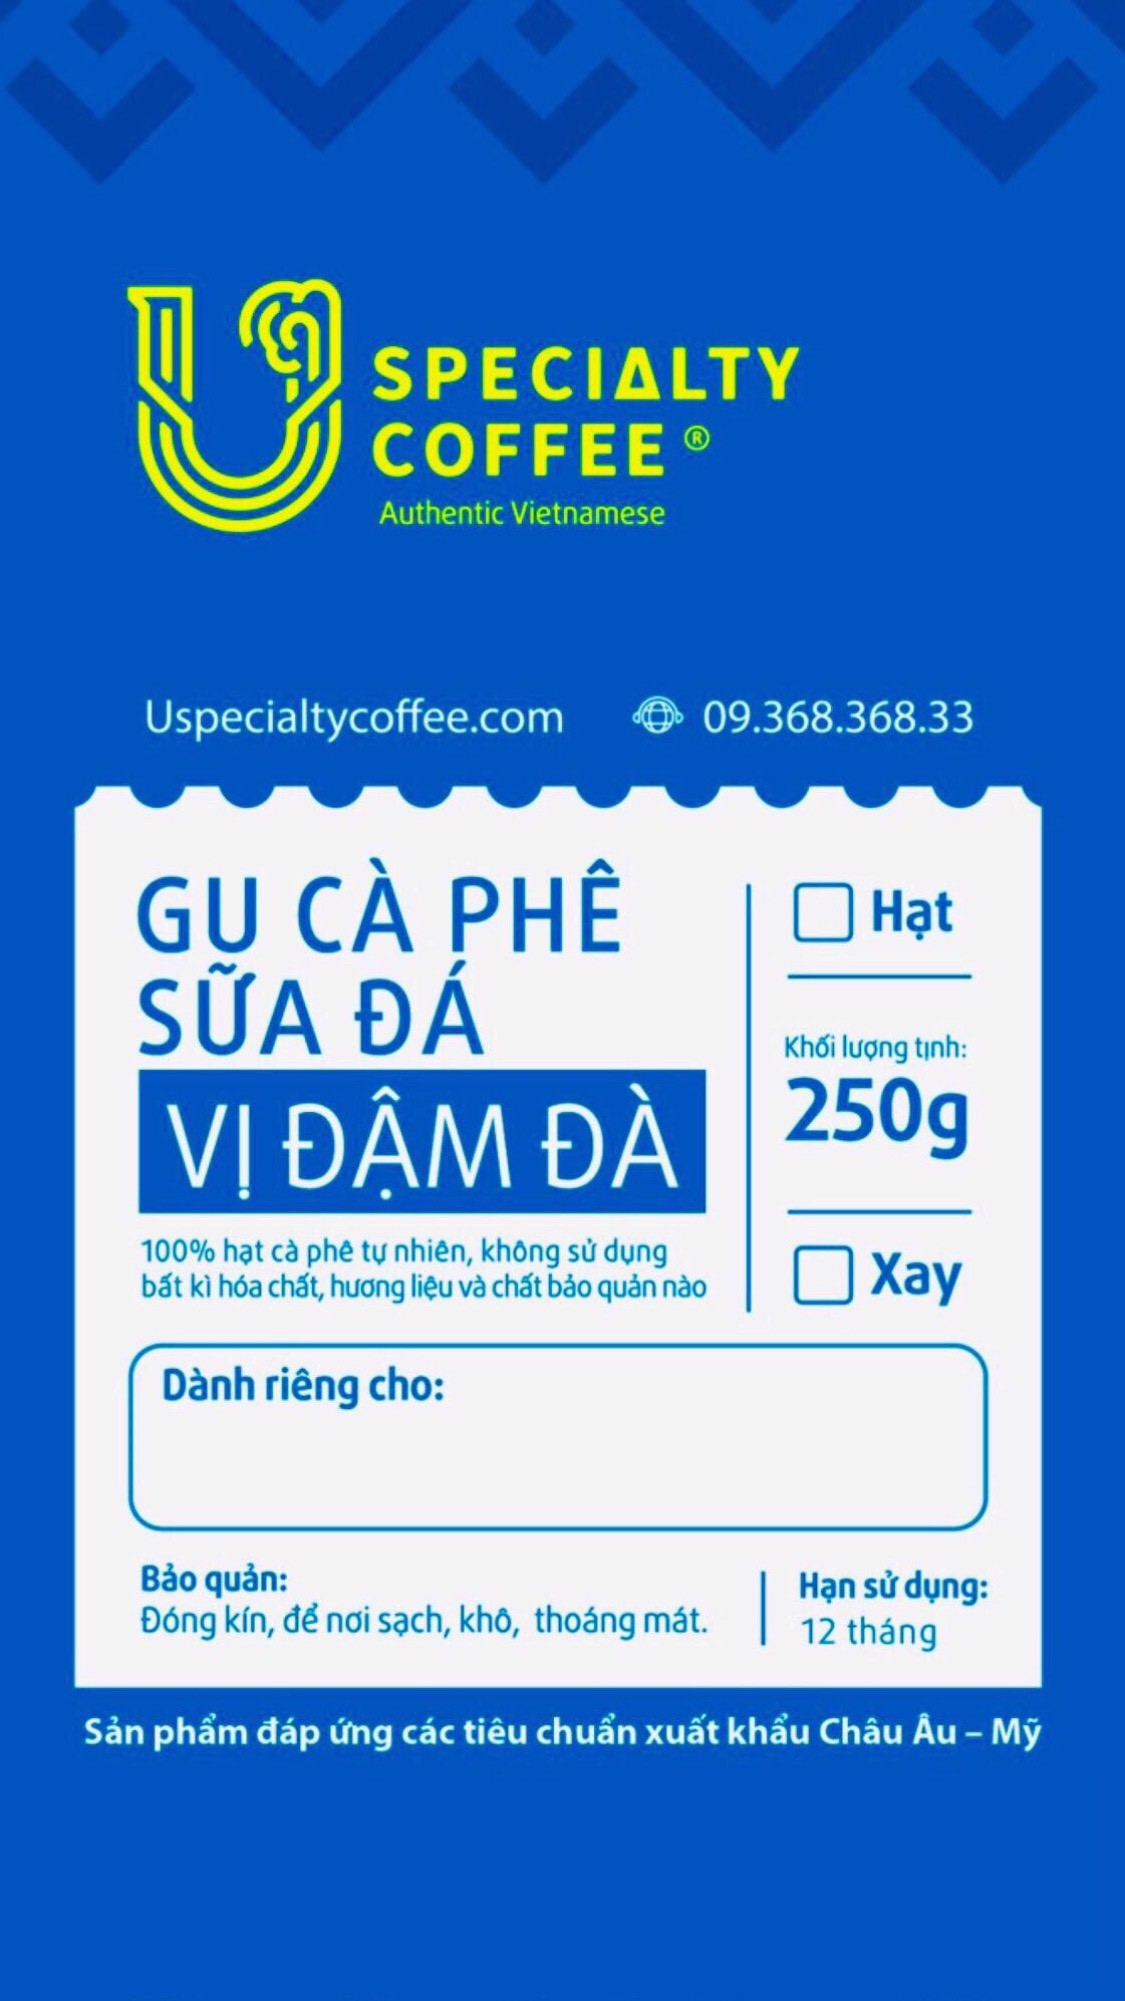 AQUA LABEL FOR VIETNAMESE ICED/ MILK COFFEE LOVERS